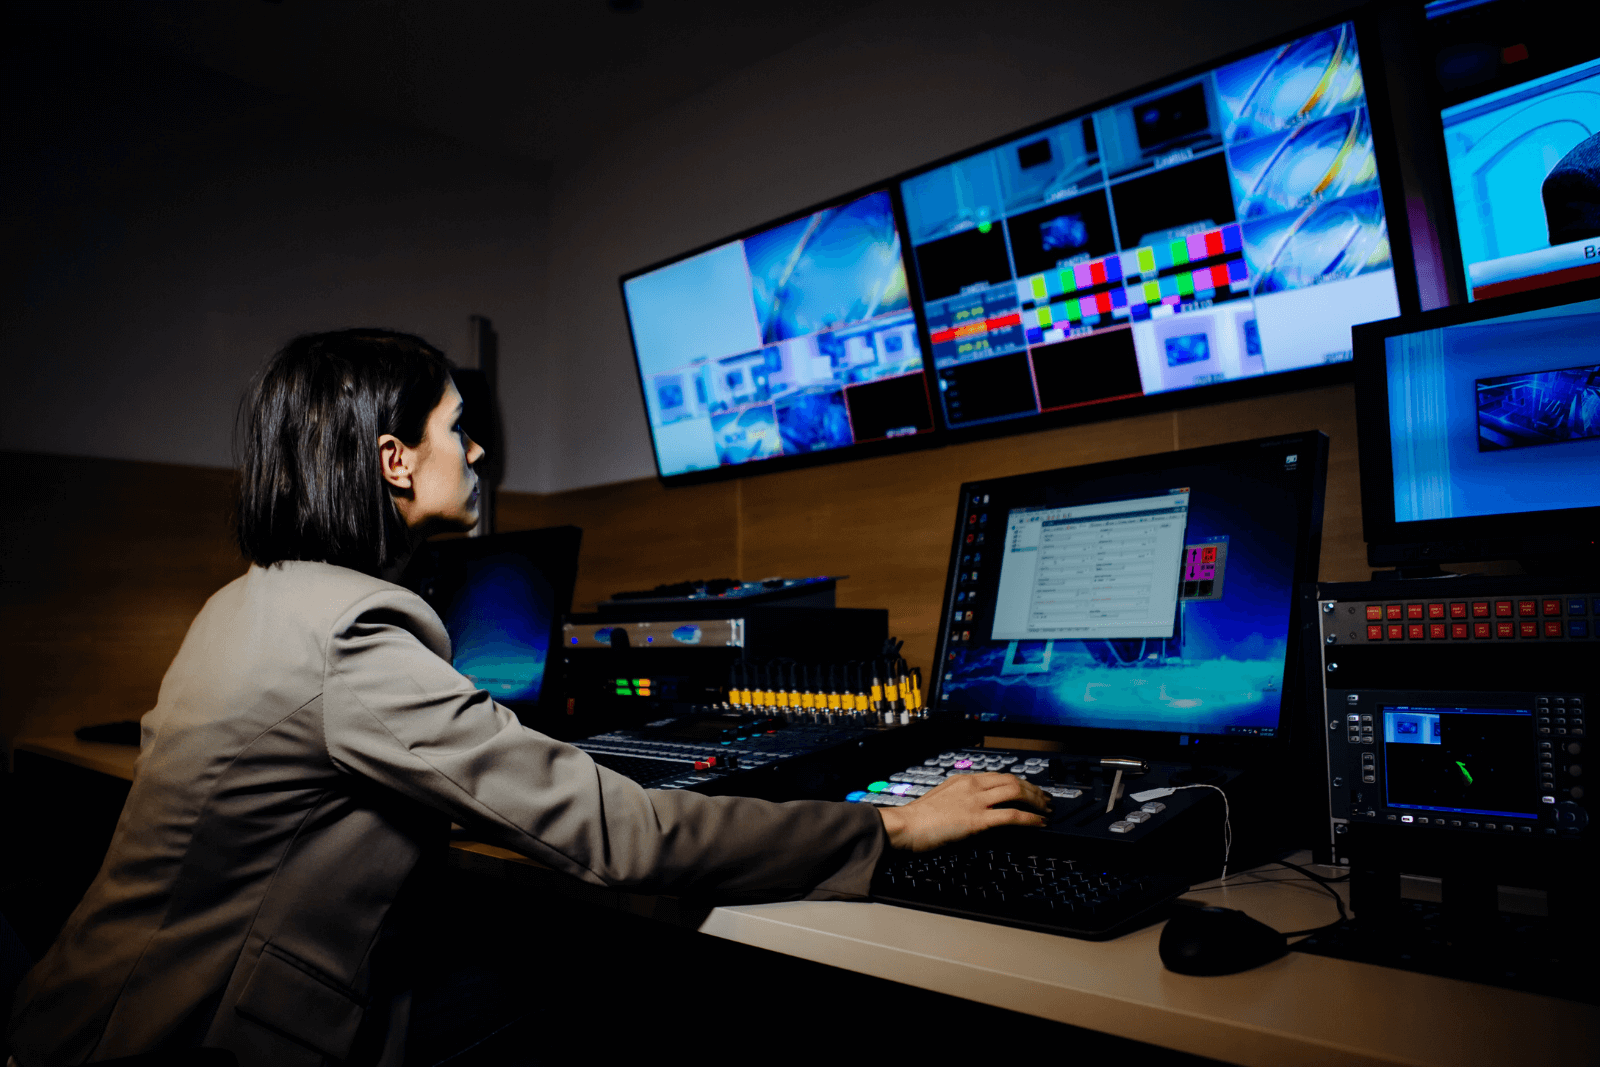 Dynamically connect broadcast production teams